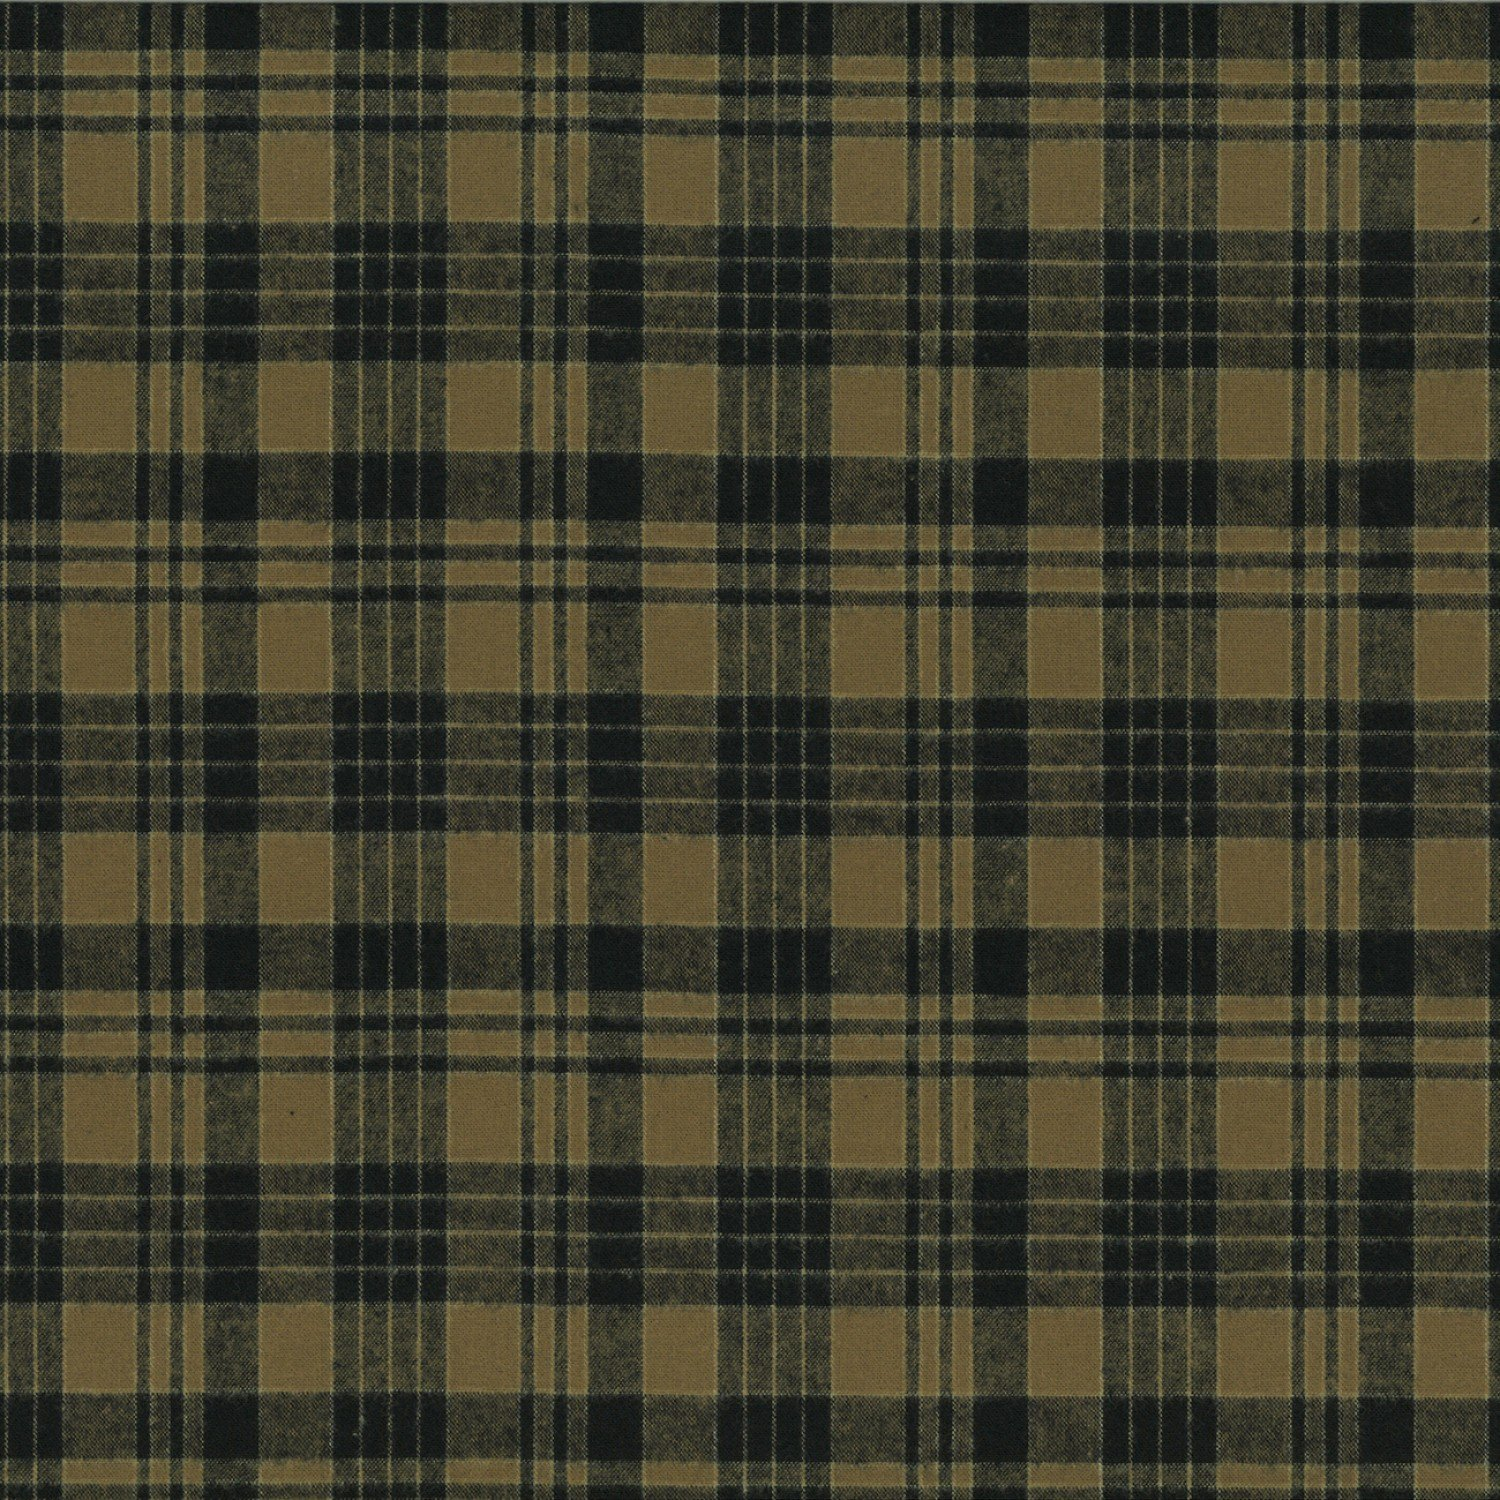 Centenary Collection - Brushed Cotton Plaid Brown/Black